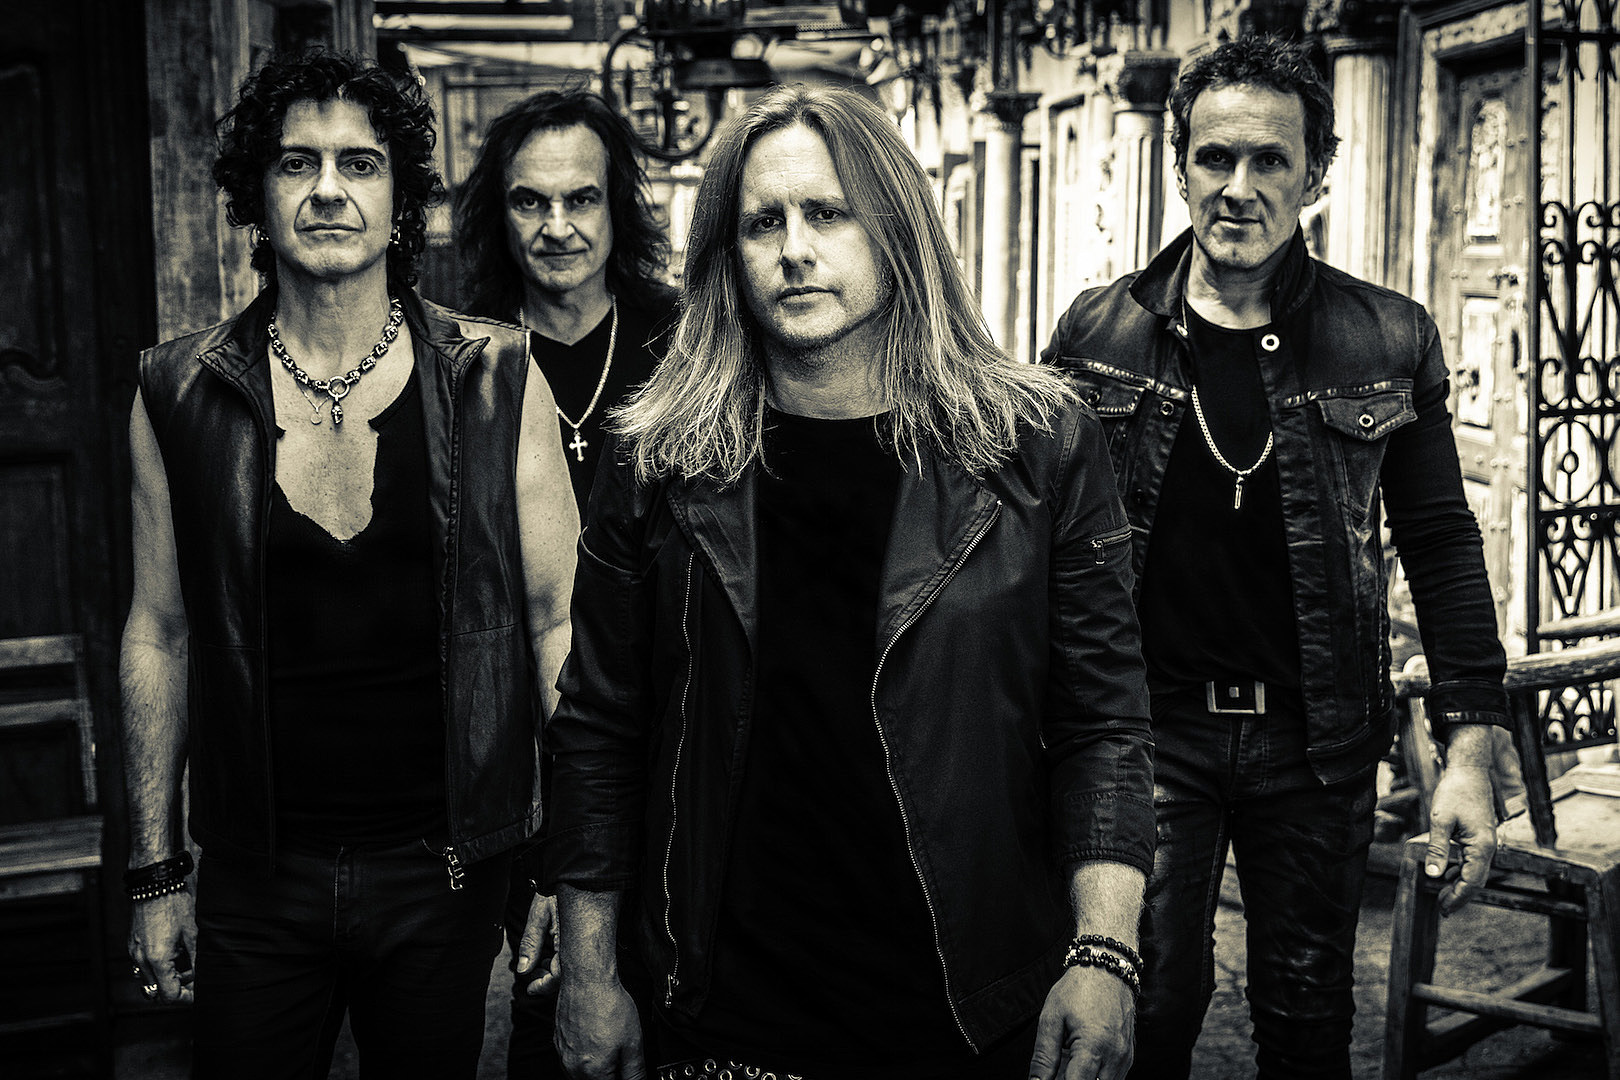 Vivian Campbell: Last in Line Didn't Want a Singer Who Could Emulate Ronnie James Dio